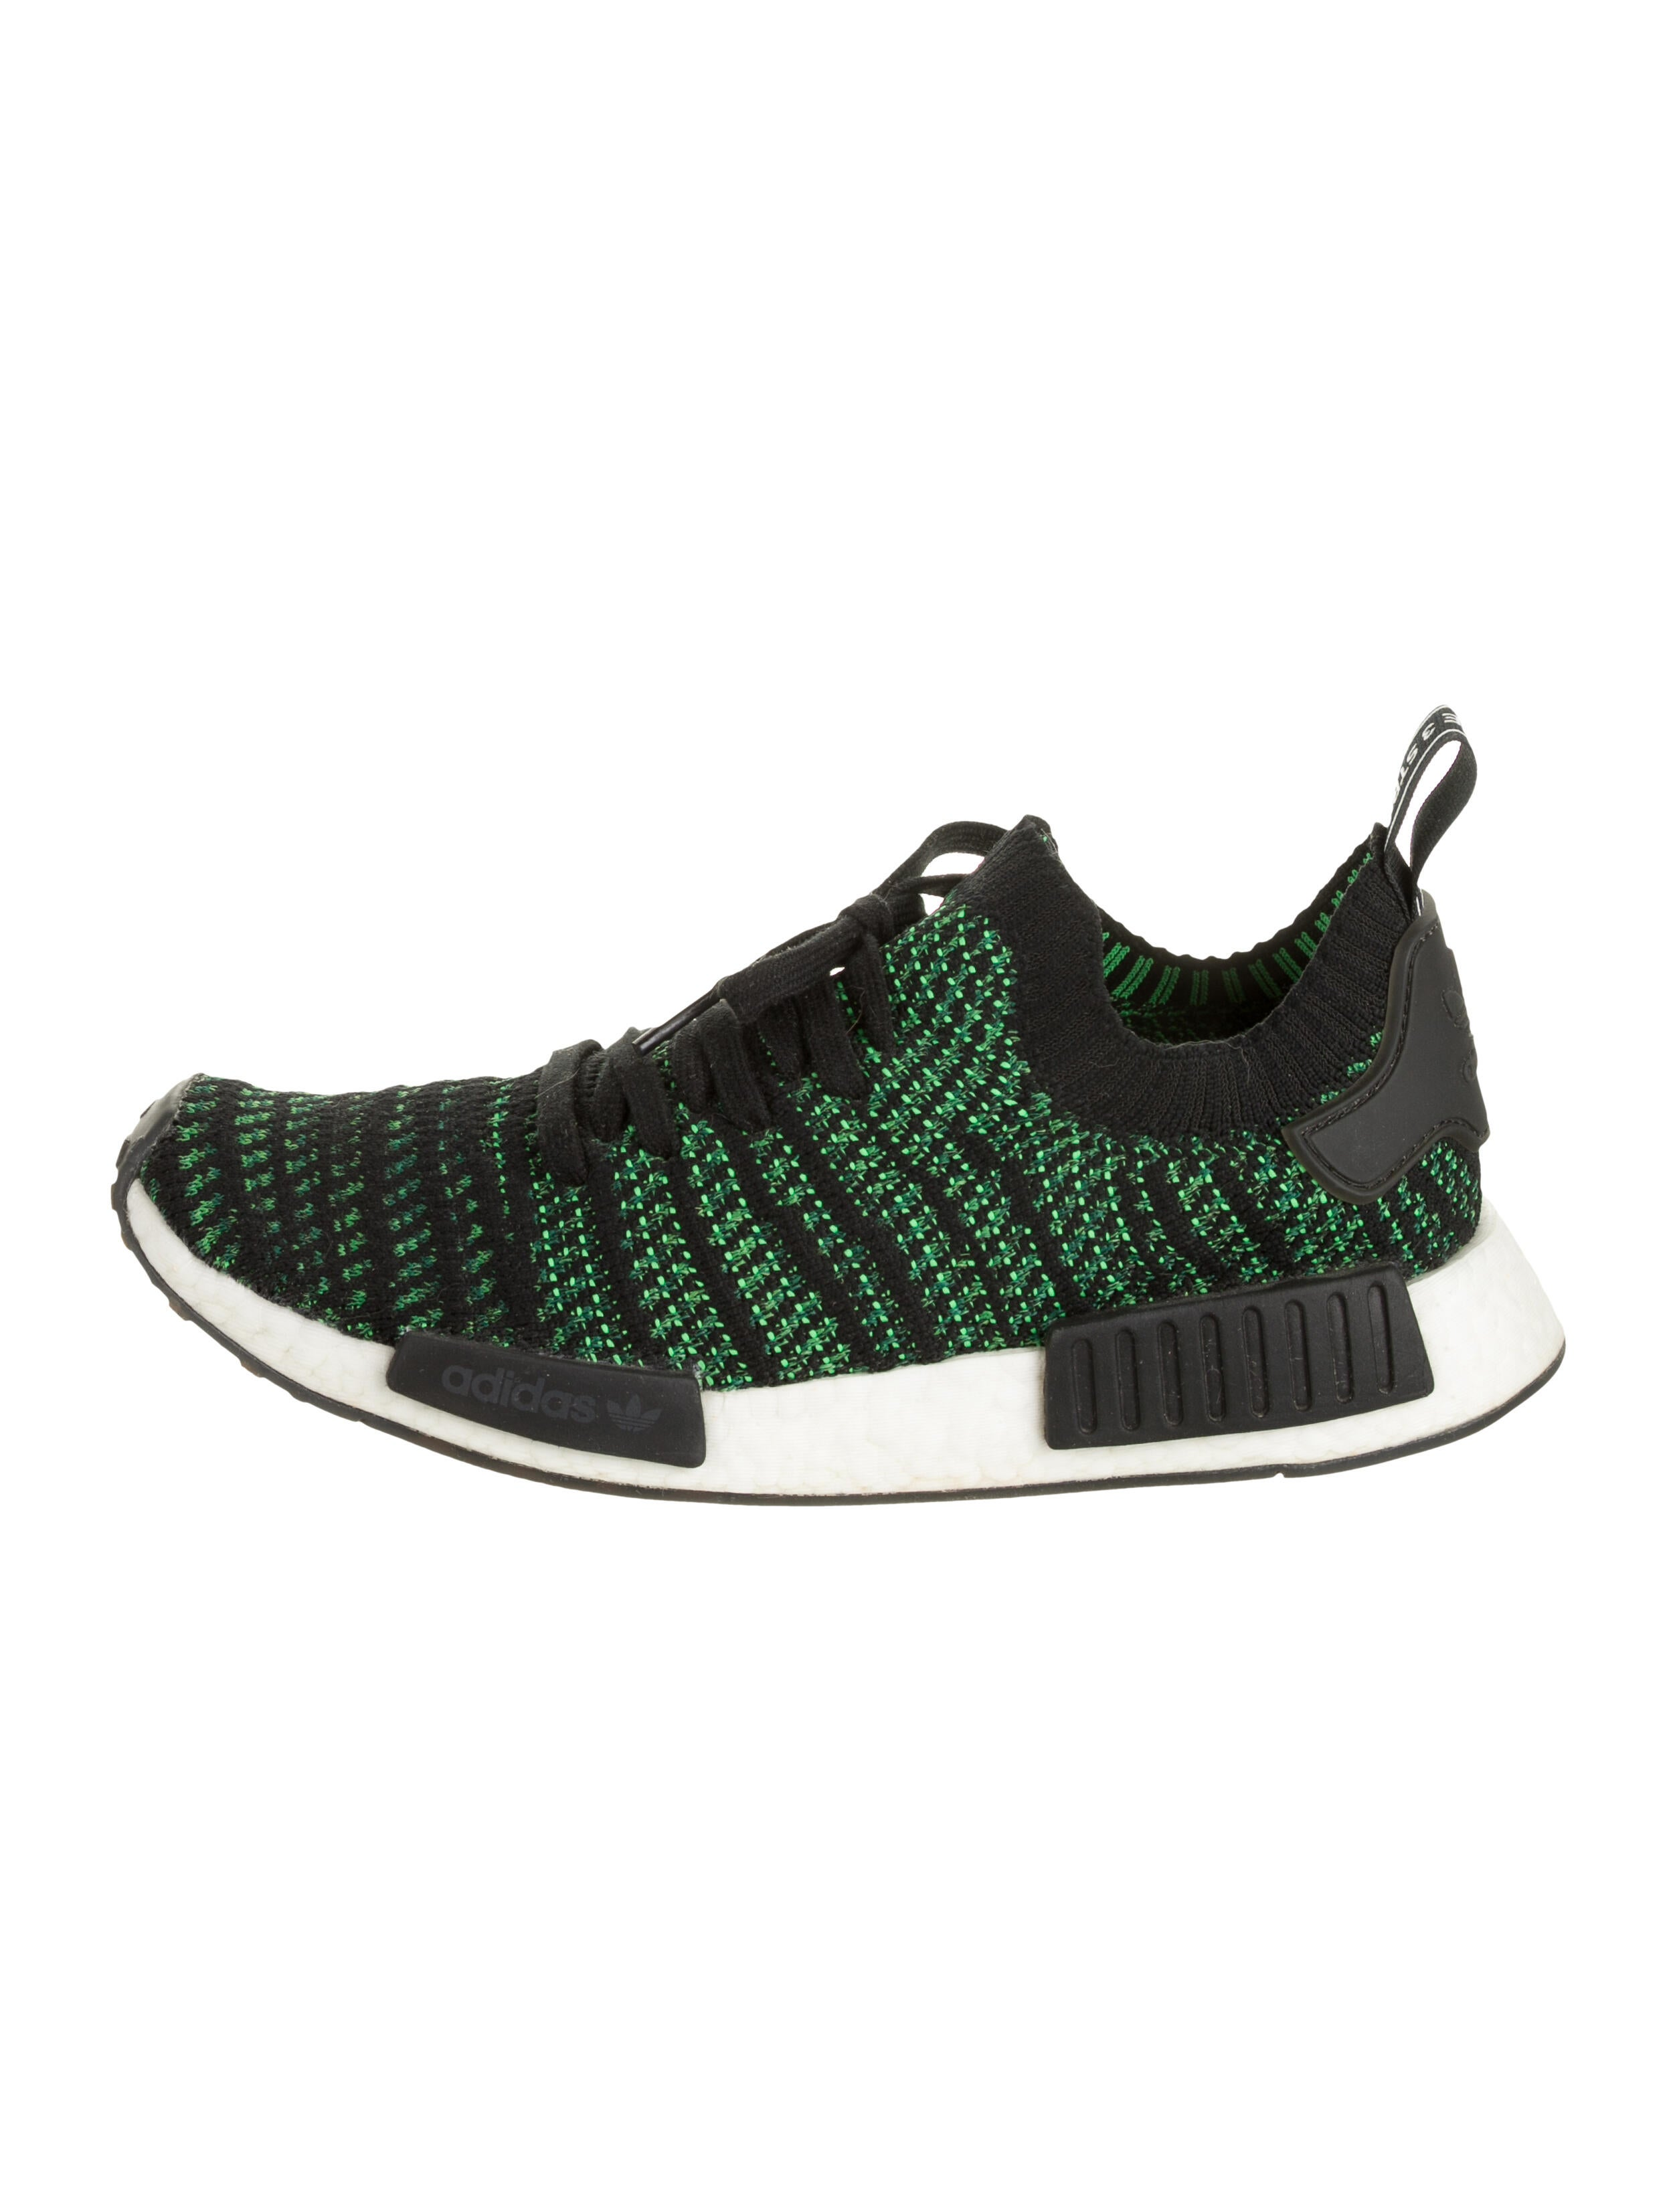 adidas NMD R1 STLT Stealth Pack Noble